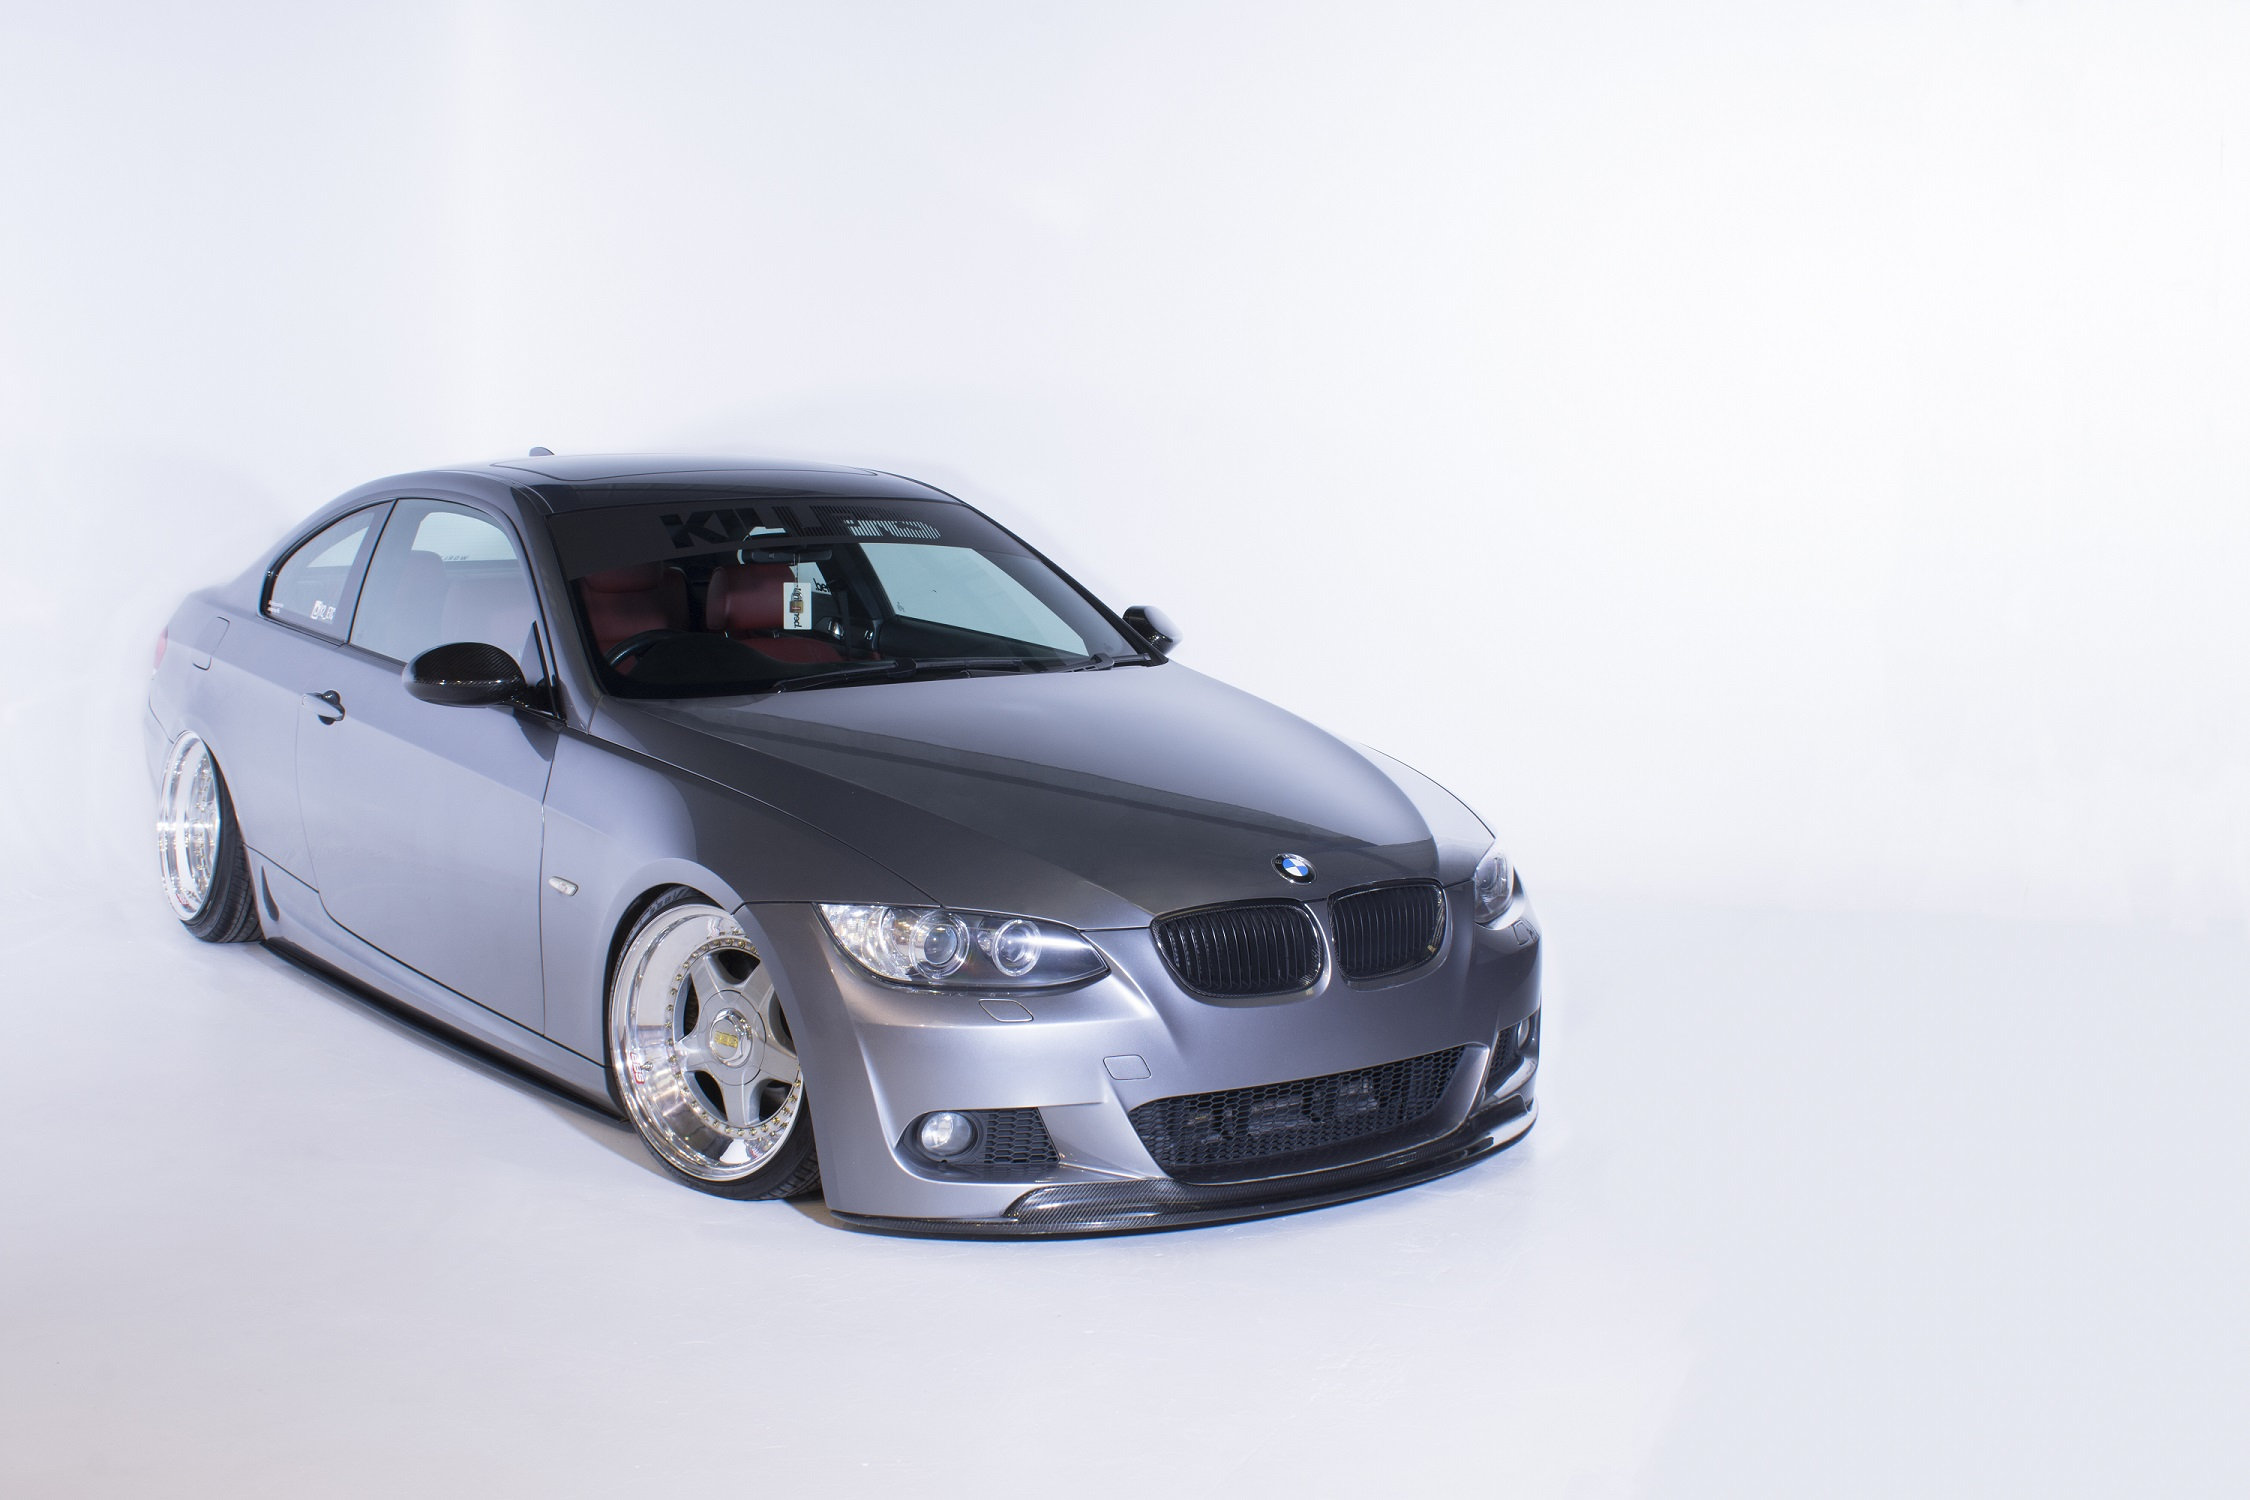 bmw 3 series series series e92 side skirt extensions lips m-performace skirt spats c42b70